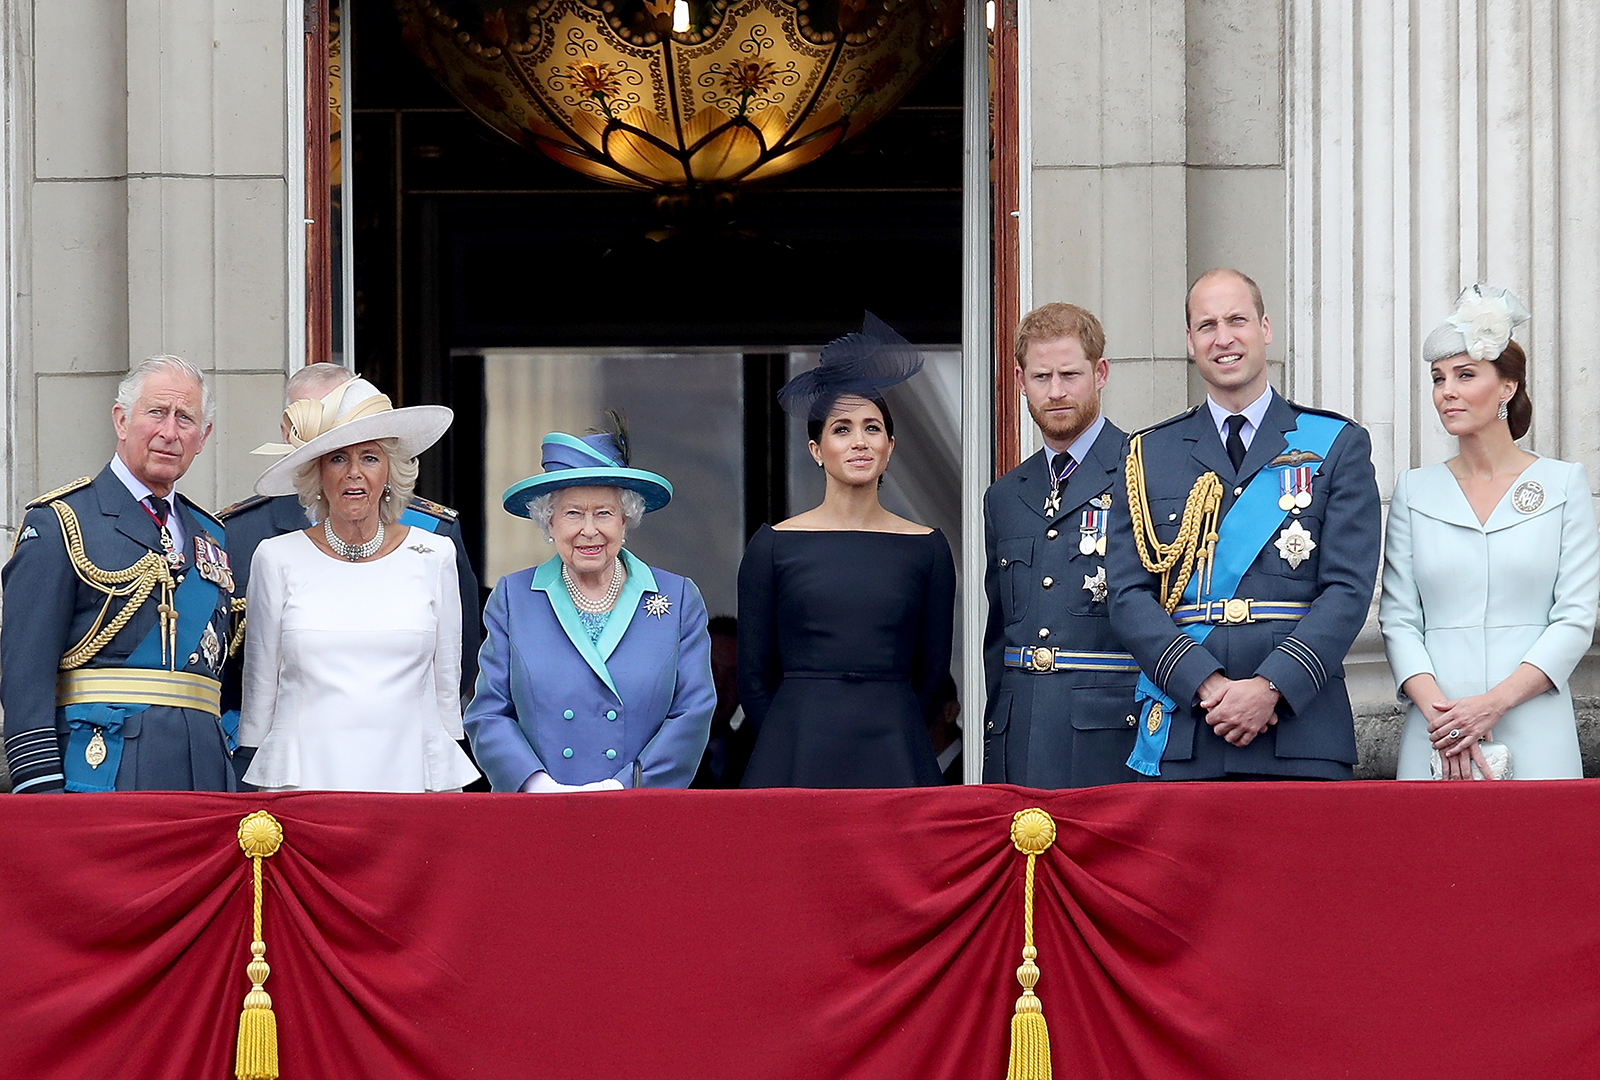 Prince Charles, Prince of Wales, Camilla, Duchess of Cornwall, Queen Elizabeth II, Meghan, Duchess of Sussex, Prince Harry, Duke of Sussex, Prince William, Duke of Cambridge and Catherine, Duchess of Cambridge watch the RAF flypast on the balcony of Buckingham Palace, as members of the Royal Family attend events to mark the centenary of the RAF on July 10, 2018 in London, England.